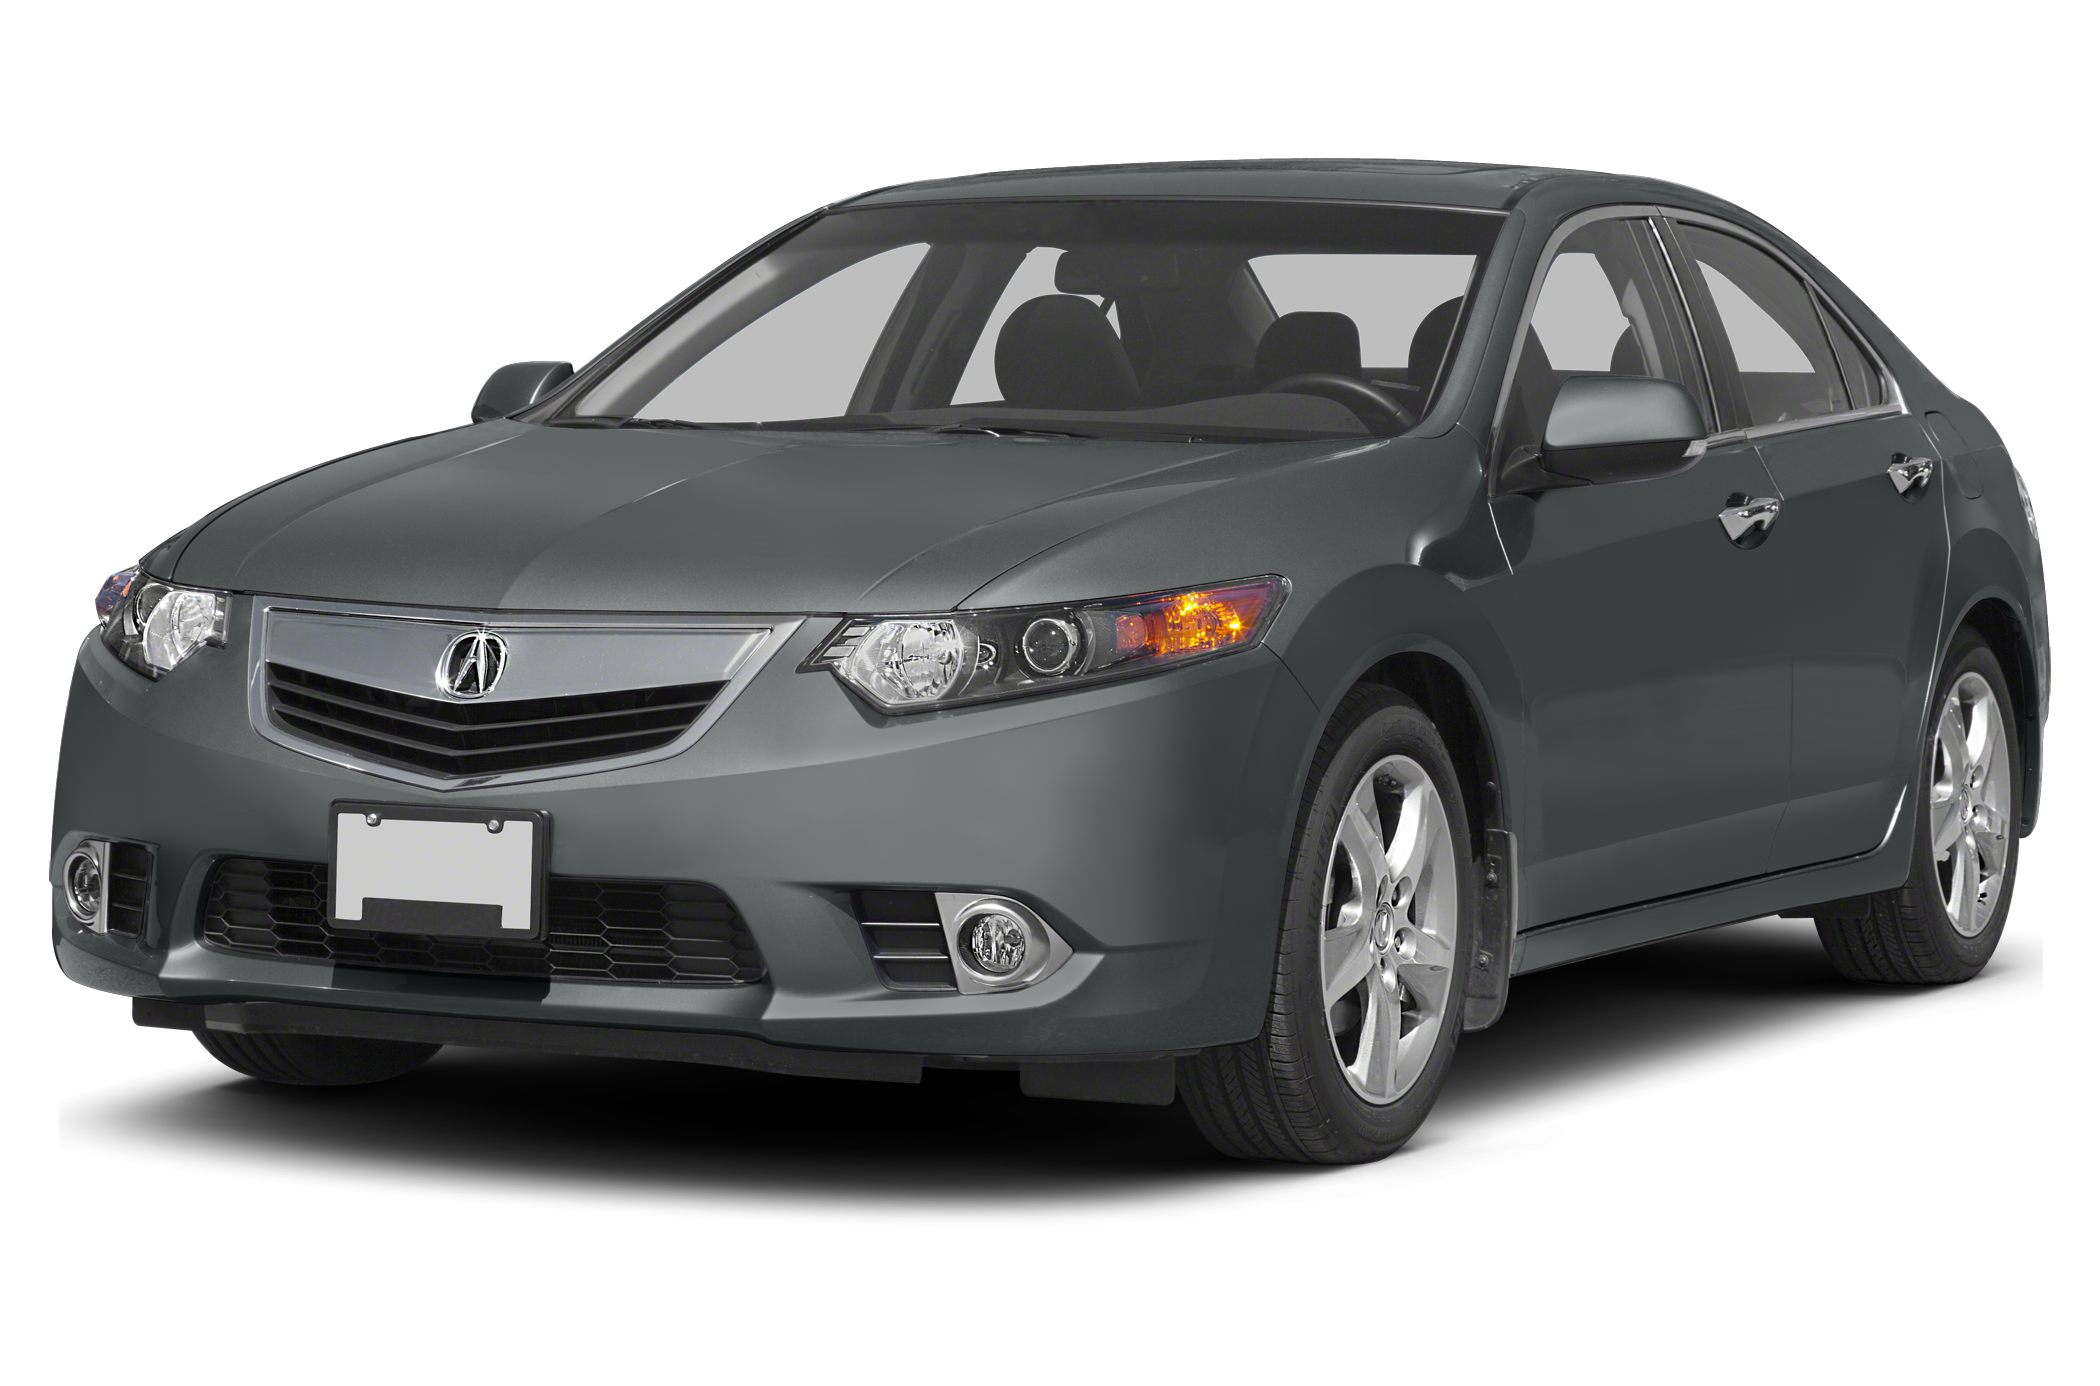 2011 Acura TSX   COME SEE THE DIFFERENCE AT TAJ AUTO MALL WE SELL OUR VEHICLES AT WHOLESA